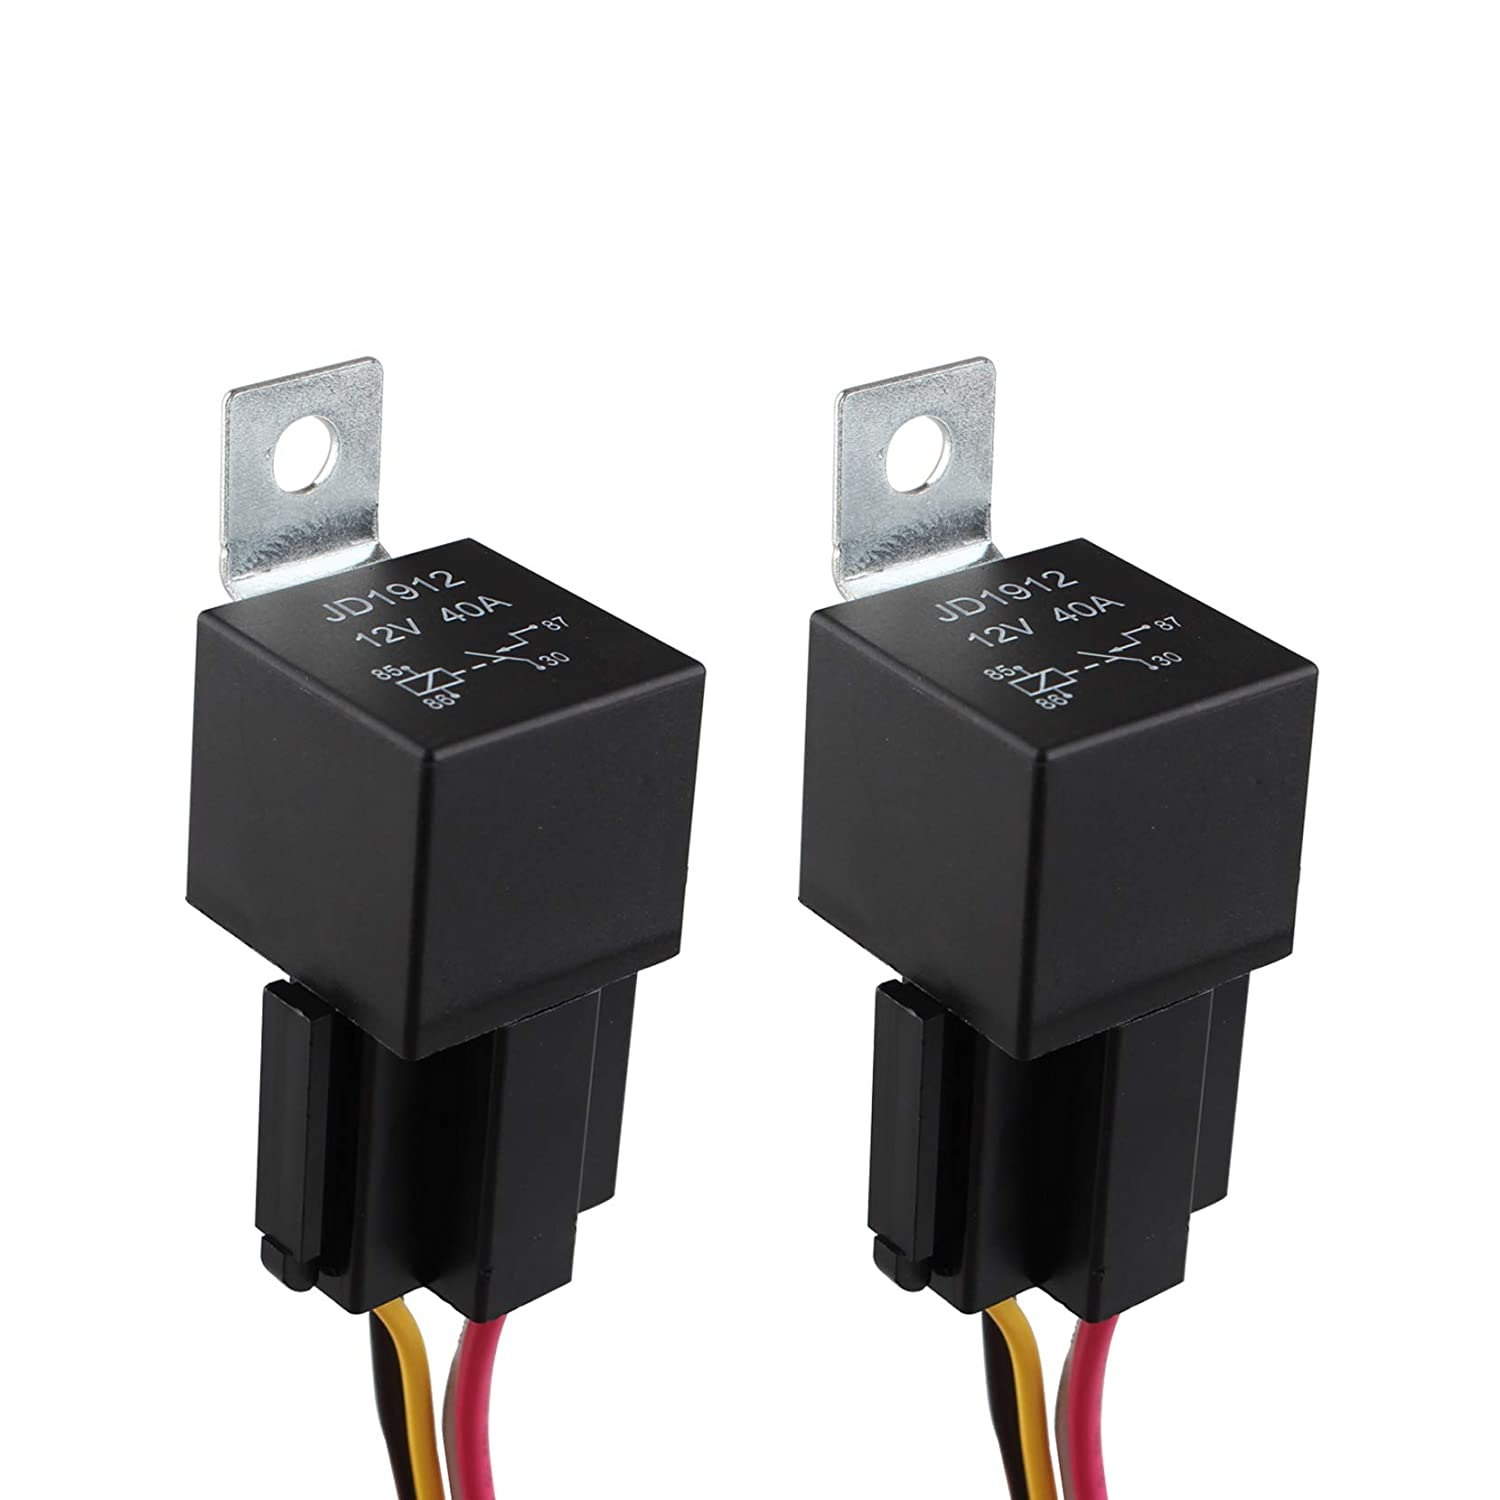 Futheda 2 Pack JD1912 Car Relay Harness 12V 40A 4 Pin SPST Harness Socket with Color-labeled Wires Compatible with Automotive Car Truck Van Motorcycle Boat